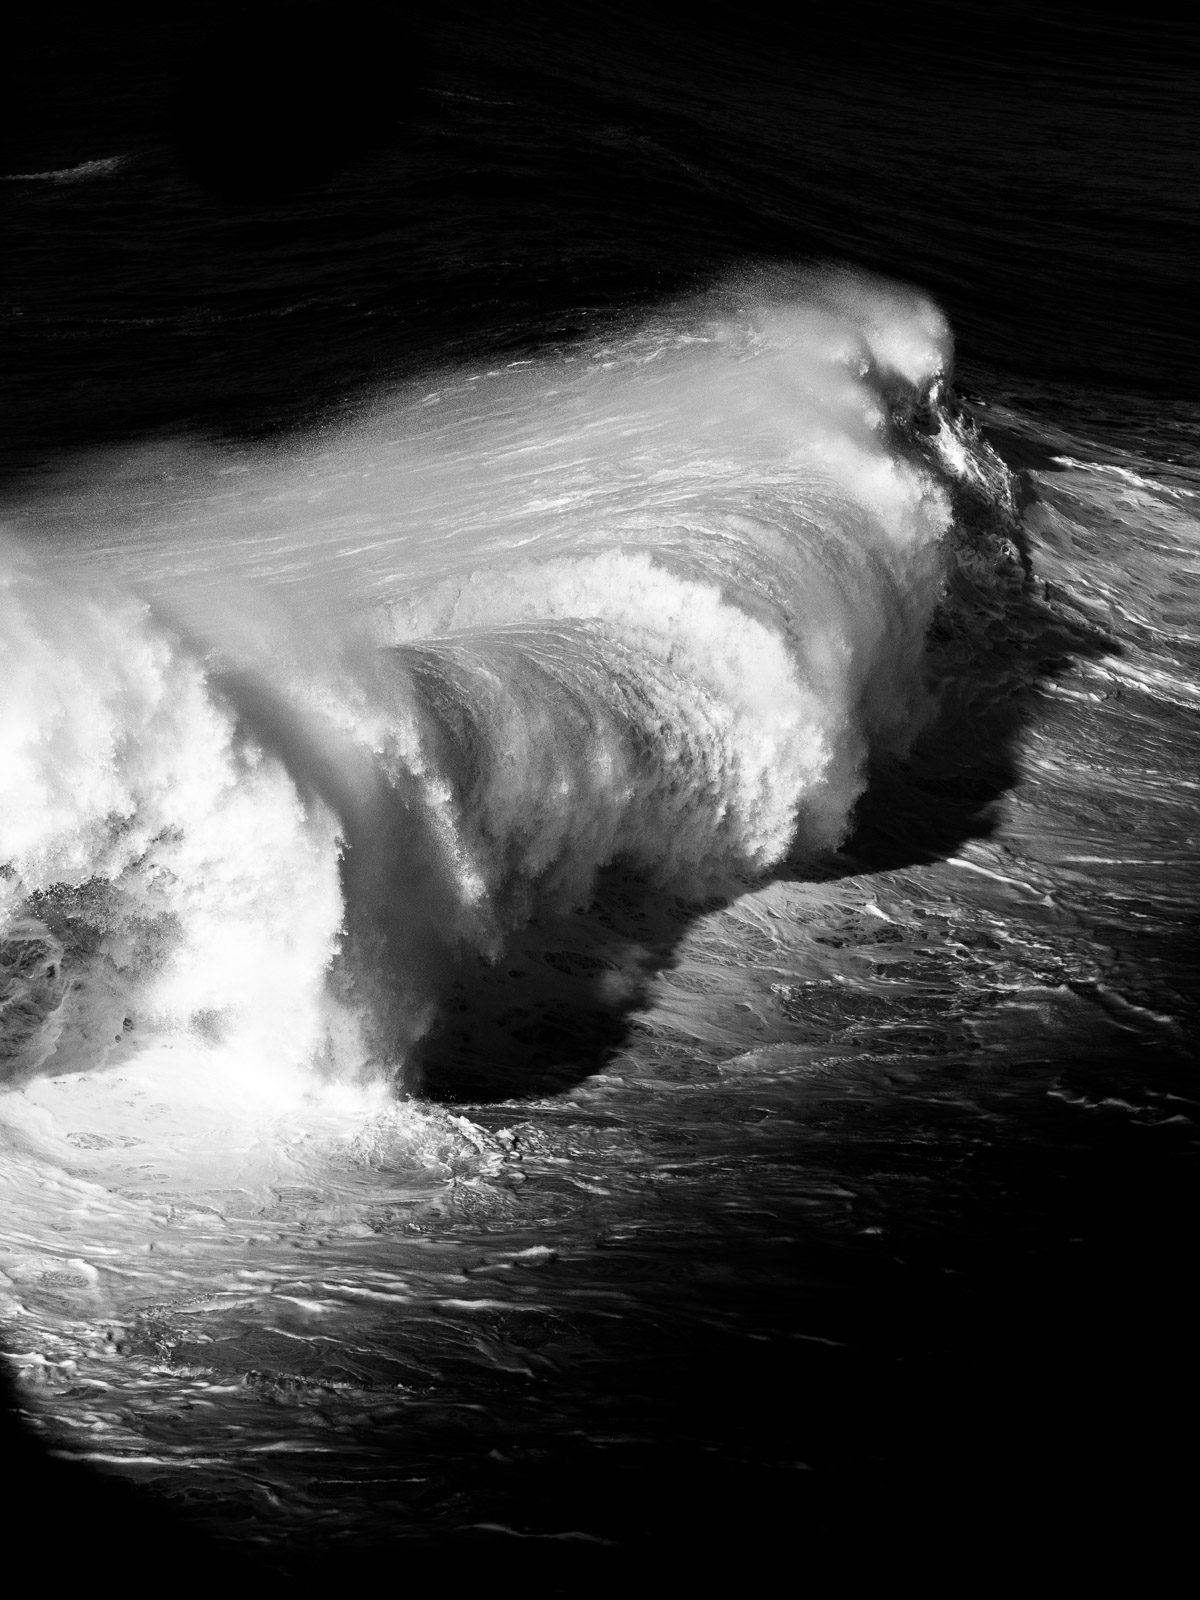 vague-nazare-portugal-nb